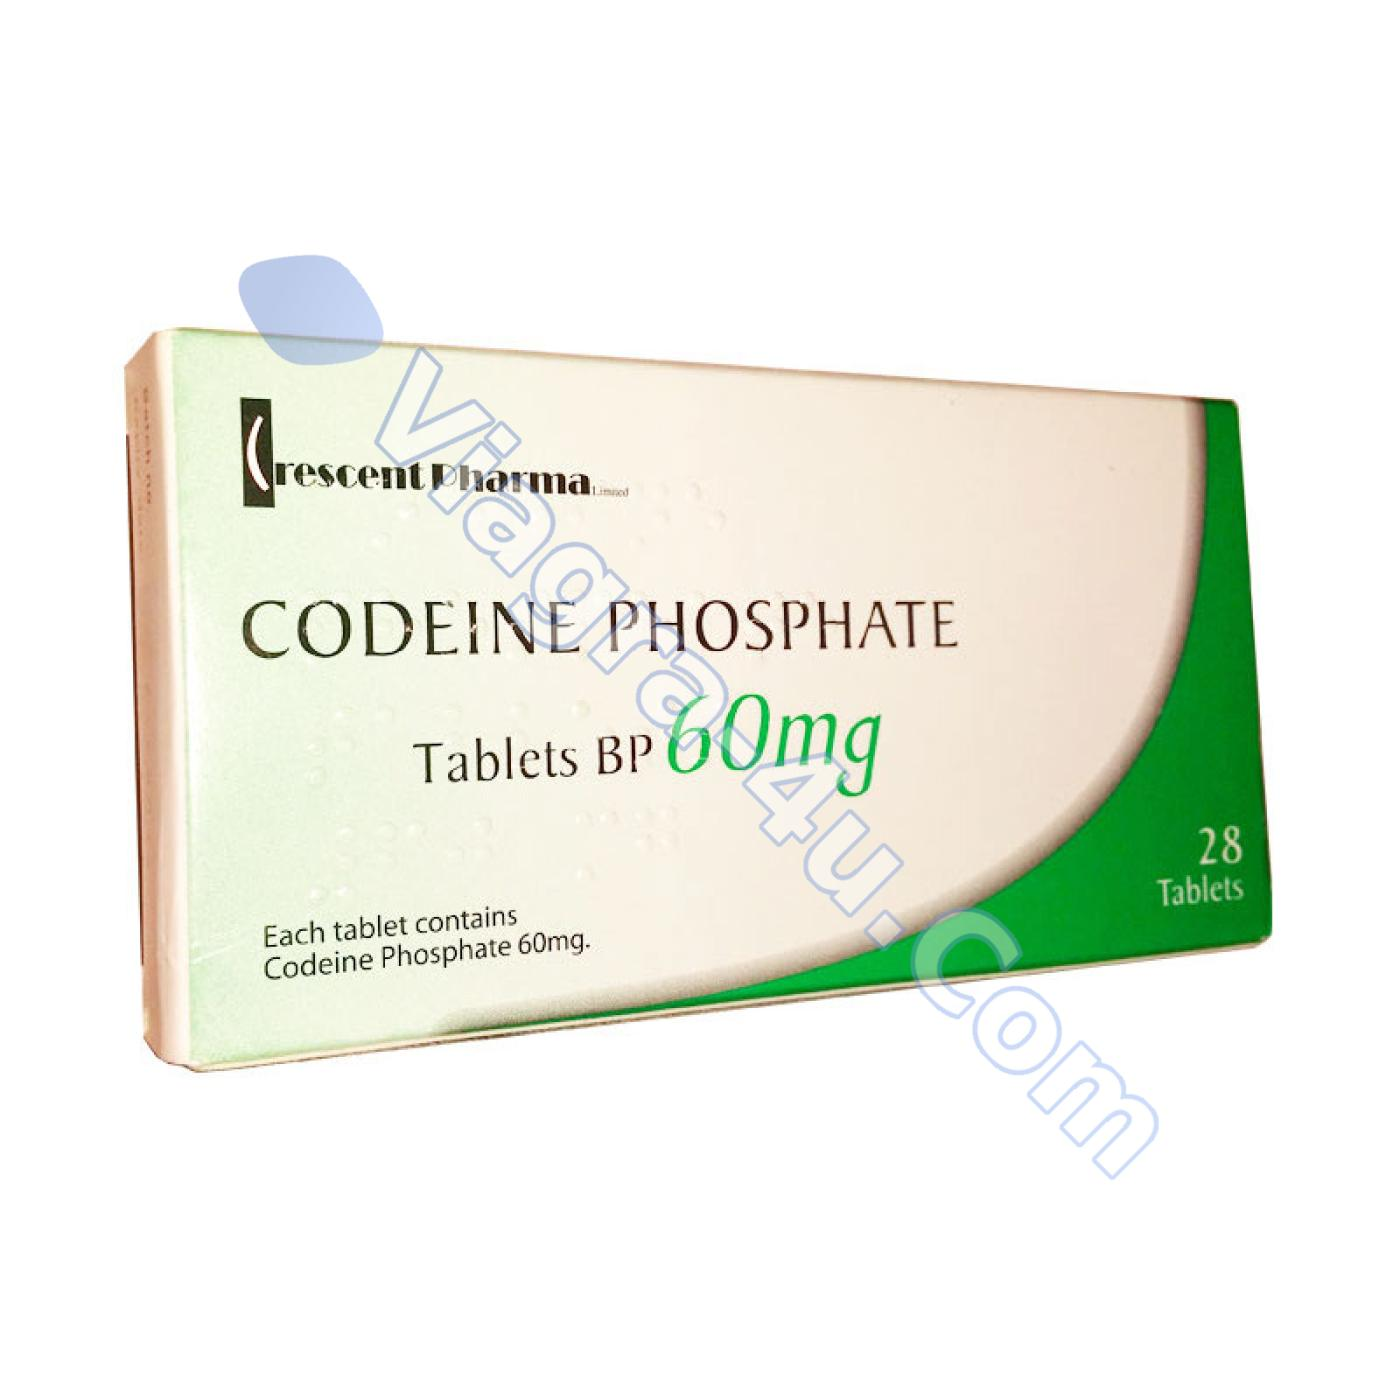 doxycycline acne cost